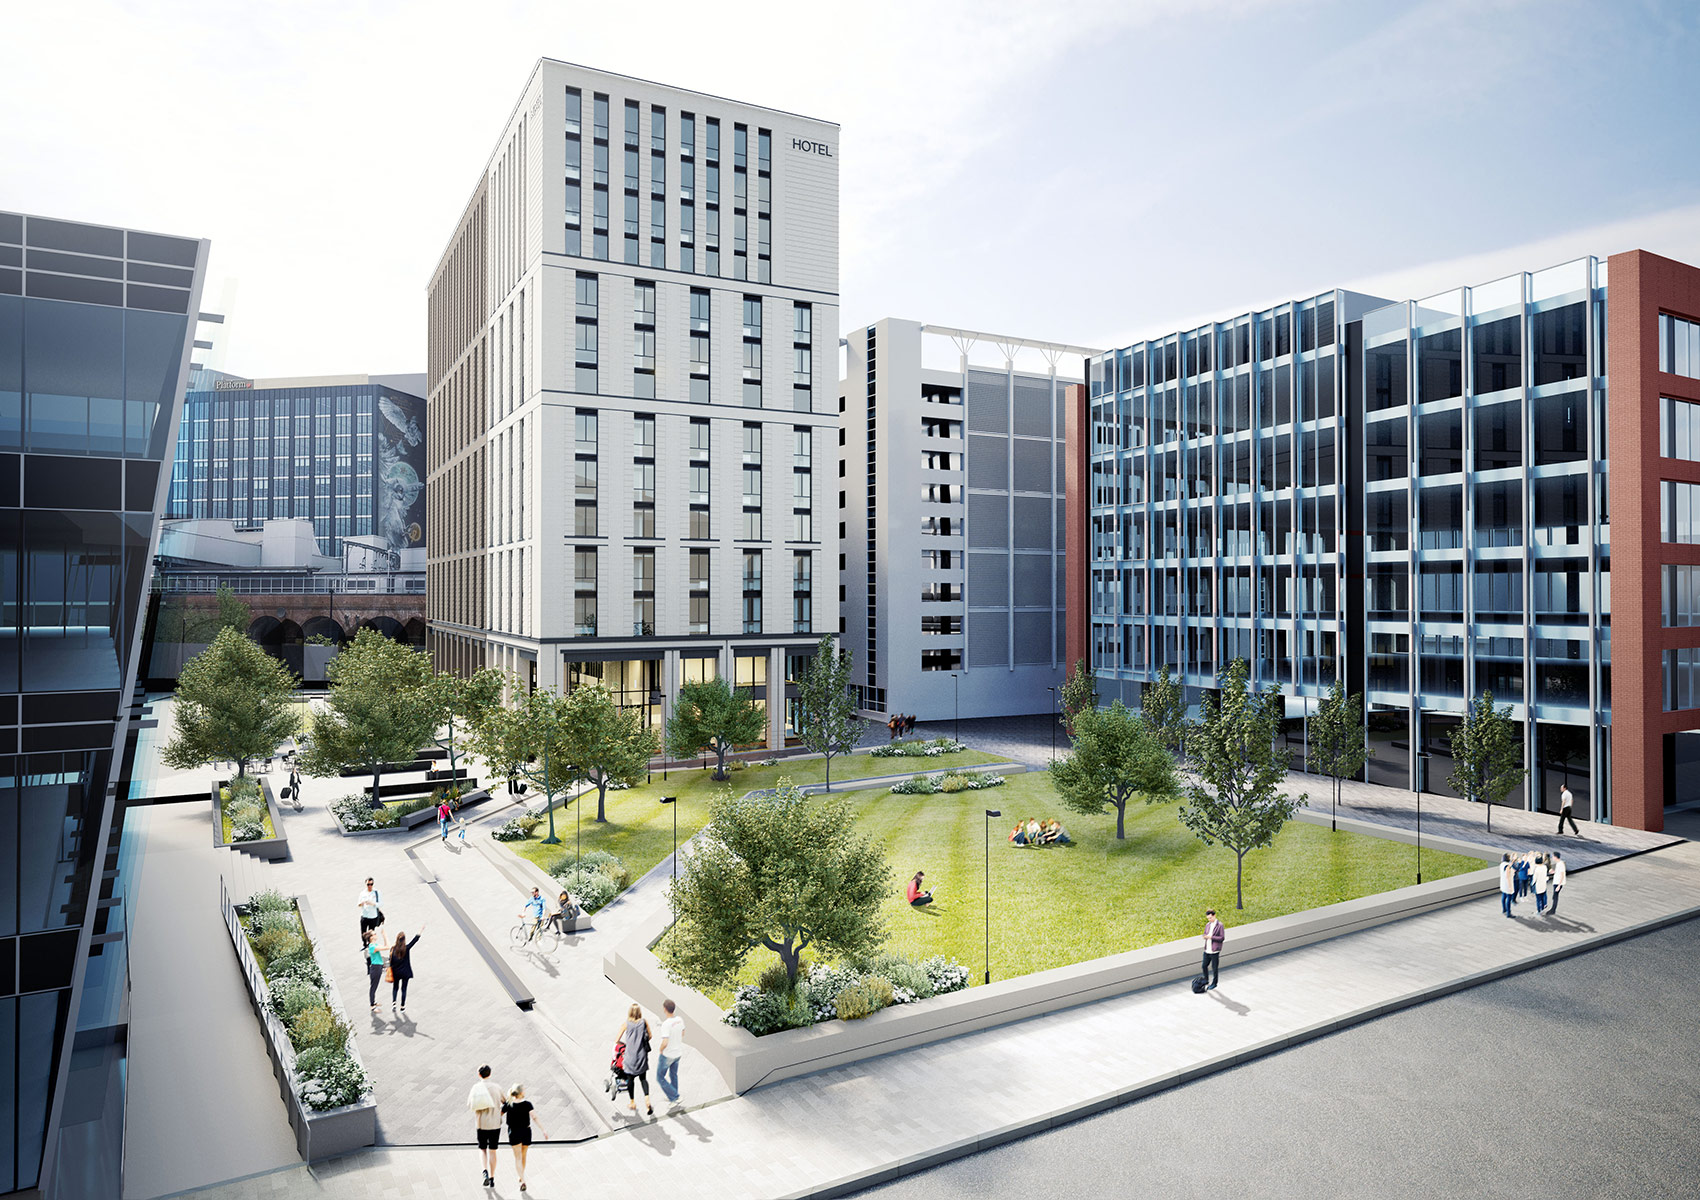 2 Sovereign Square, Leeds, 3D visual of approach to the hotel